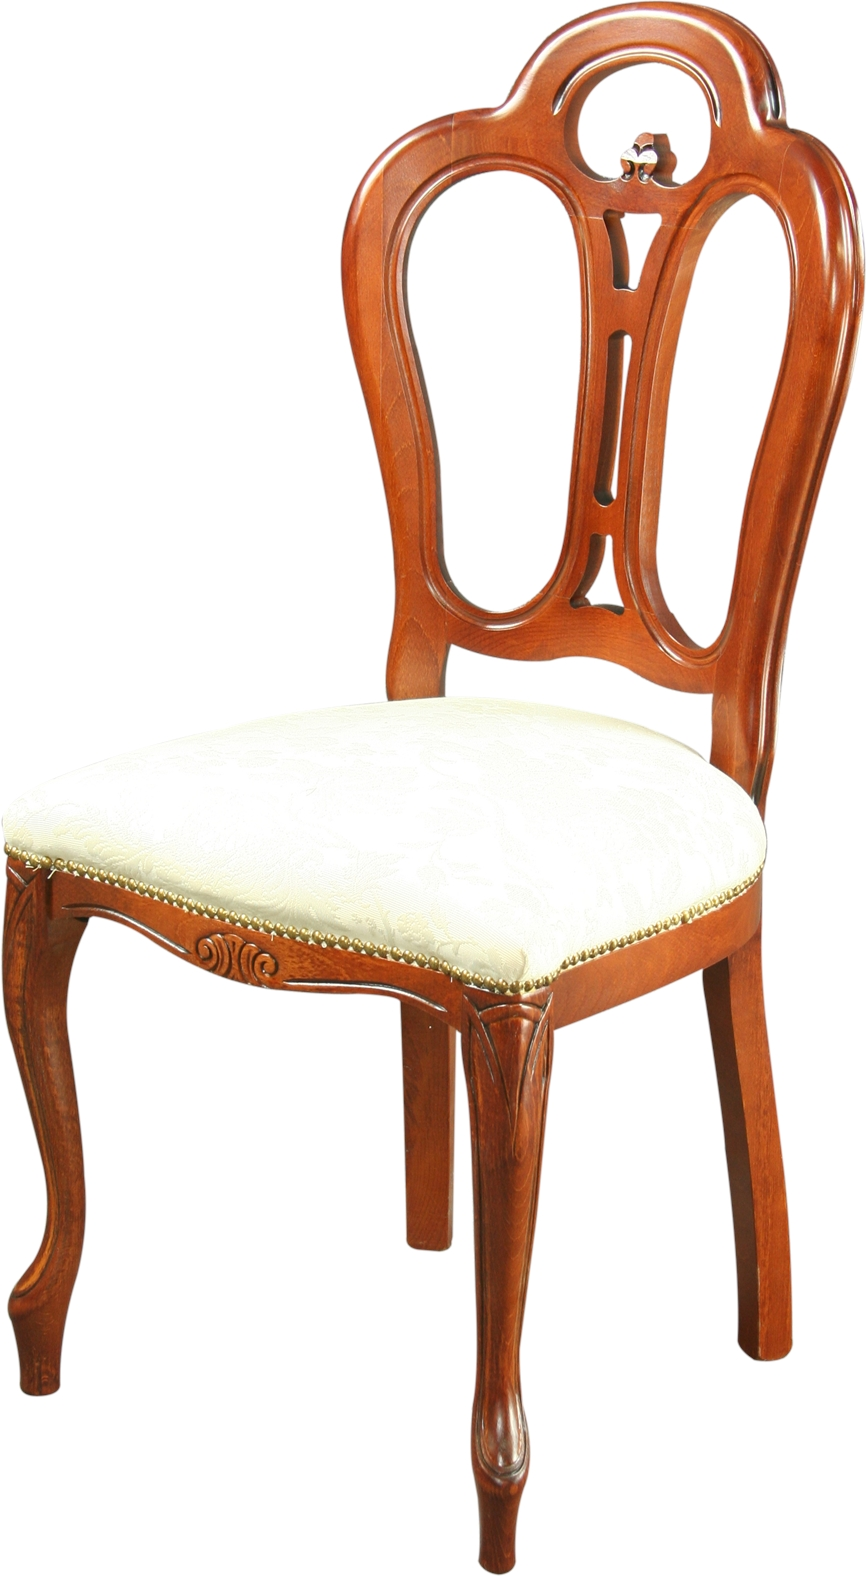 rococo dining chair italy ivory damask upholstery mahogany frame